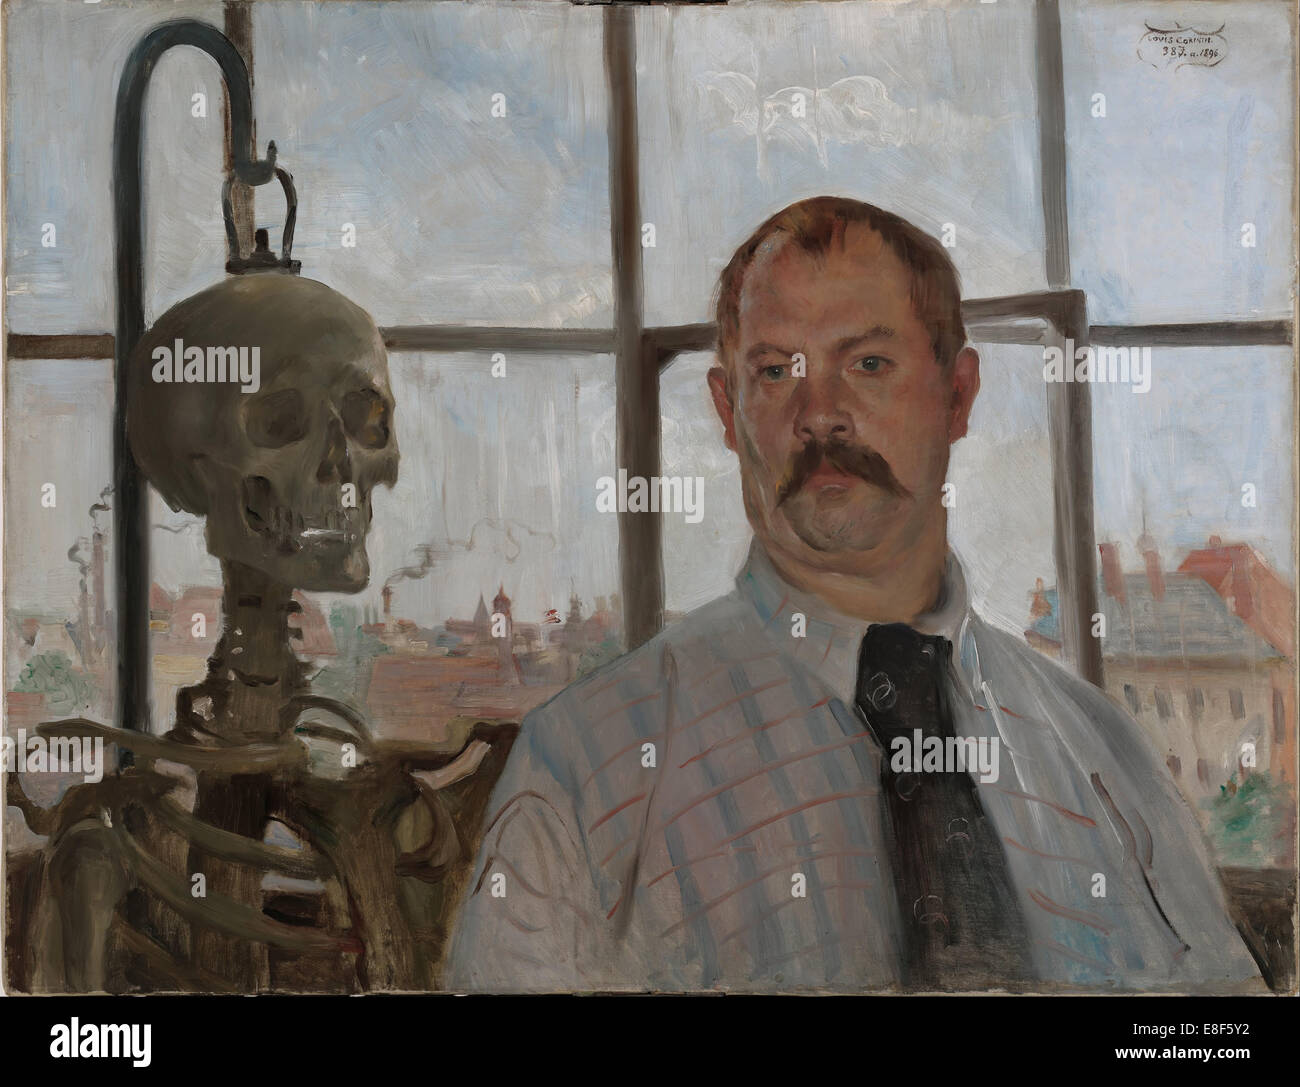 Selfportrait with skeleton. Artist: Corinth, Lovis (1858-1925) - Stock Image